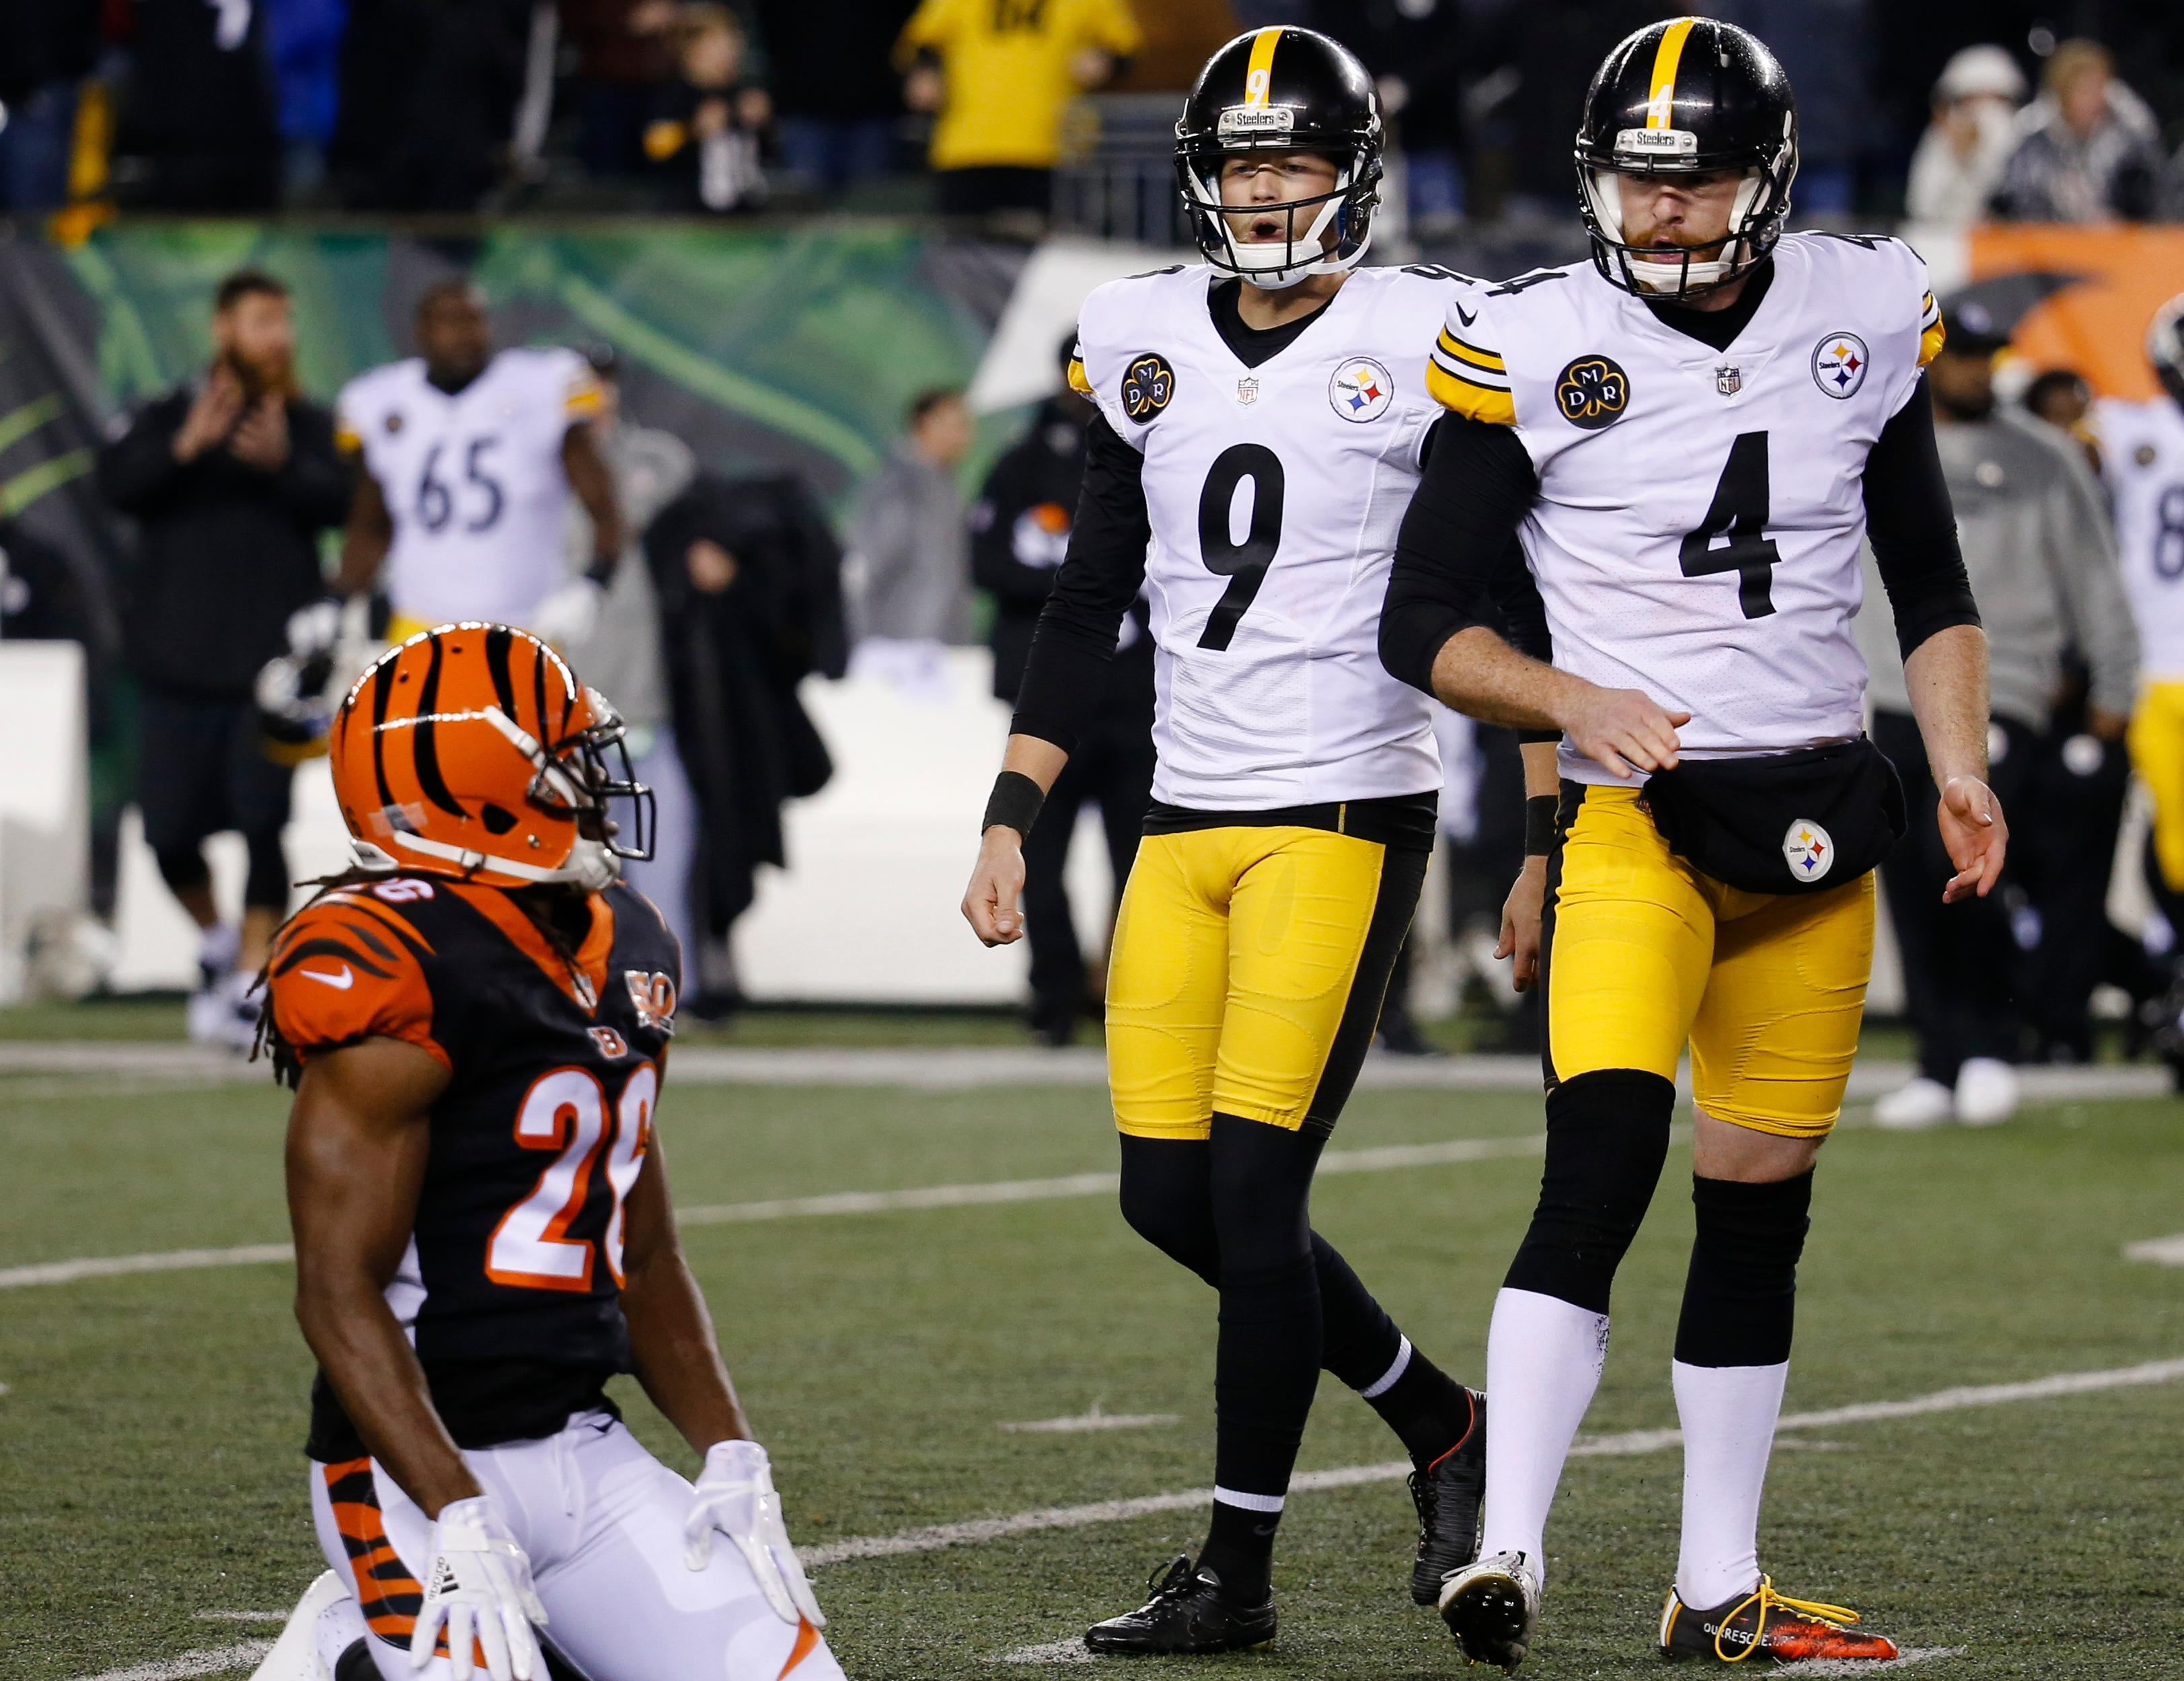 The Pittsburgh Steelers play an NFL football game against the Cincinnati Bengals, Monday, Dec. 4, 2017, in Cincinnati. (AP Photo/Frank Victores)